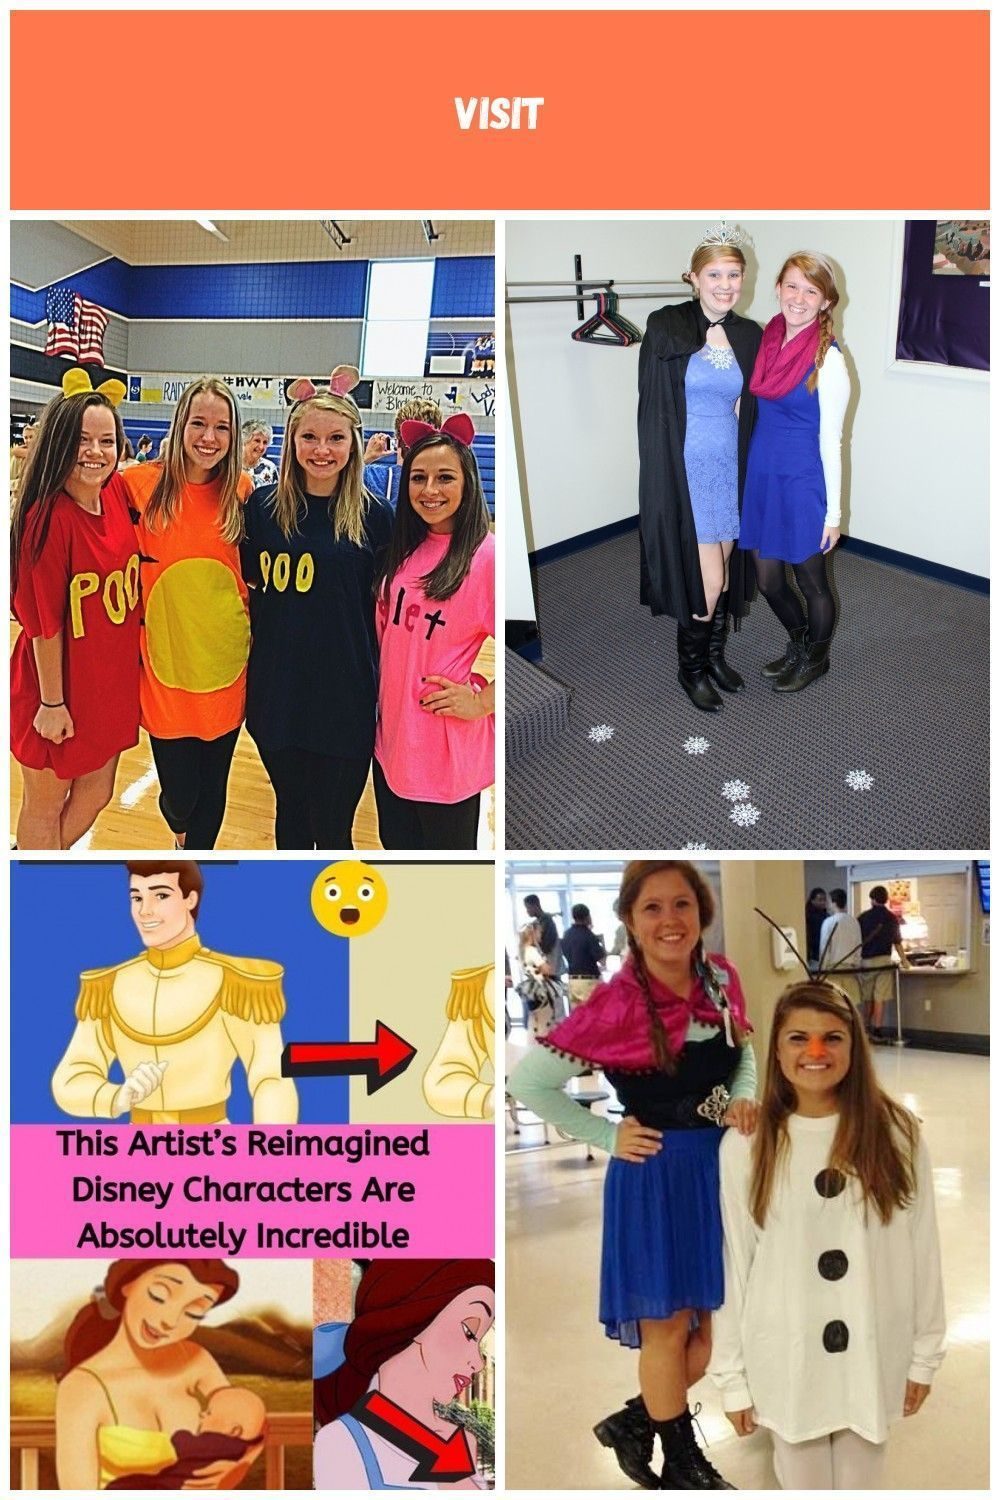 Winnie the Pooh Disney Spirit Day #characters #piglet #roo #tigger #pooh #halloween #costumes #friends #characterdayspiritweek Winnie the Pooh Disney Spirit Day #characters #piglet #roo #tigger #pooh #halloween #costumes #friends disney characters Spirit Week #characterdayspiritweek Winnie the Pooh Disney Spirit Day #characters #piglet #roo #tigger #pooh #halloween #costumes #friends #characterdayspiritweek Winnie the Pooh Disney Spirit Day #characters #piglet #roo #tigger #pooh #halloween #cost #characterdayspiritweek